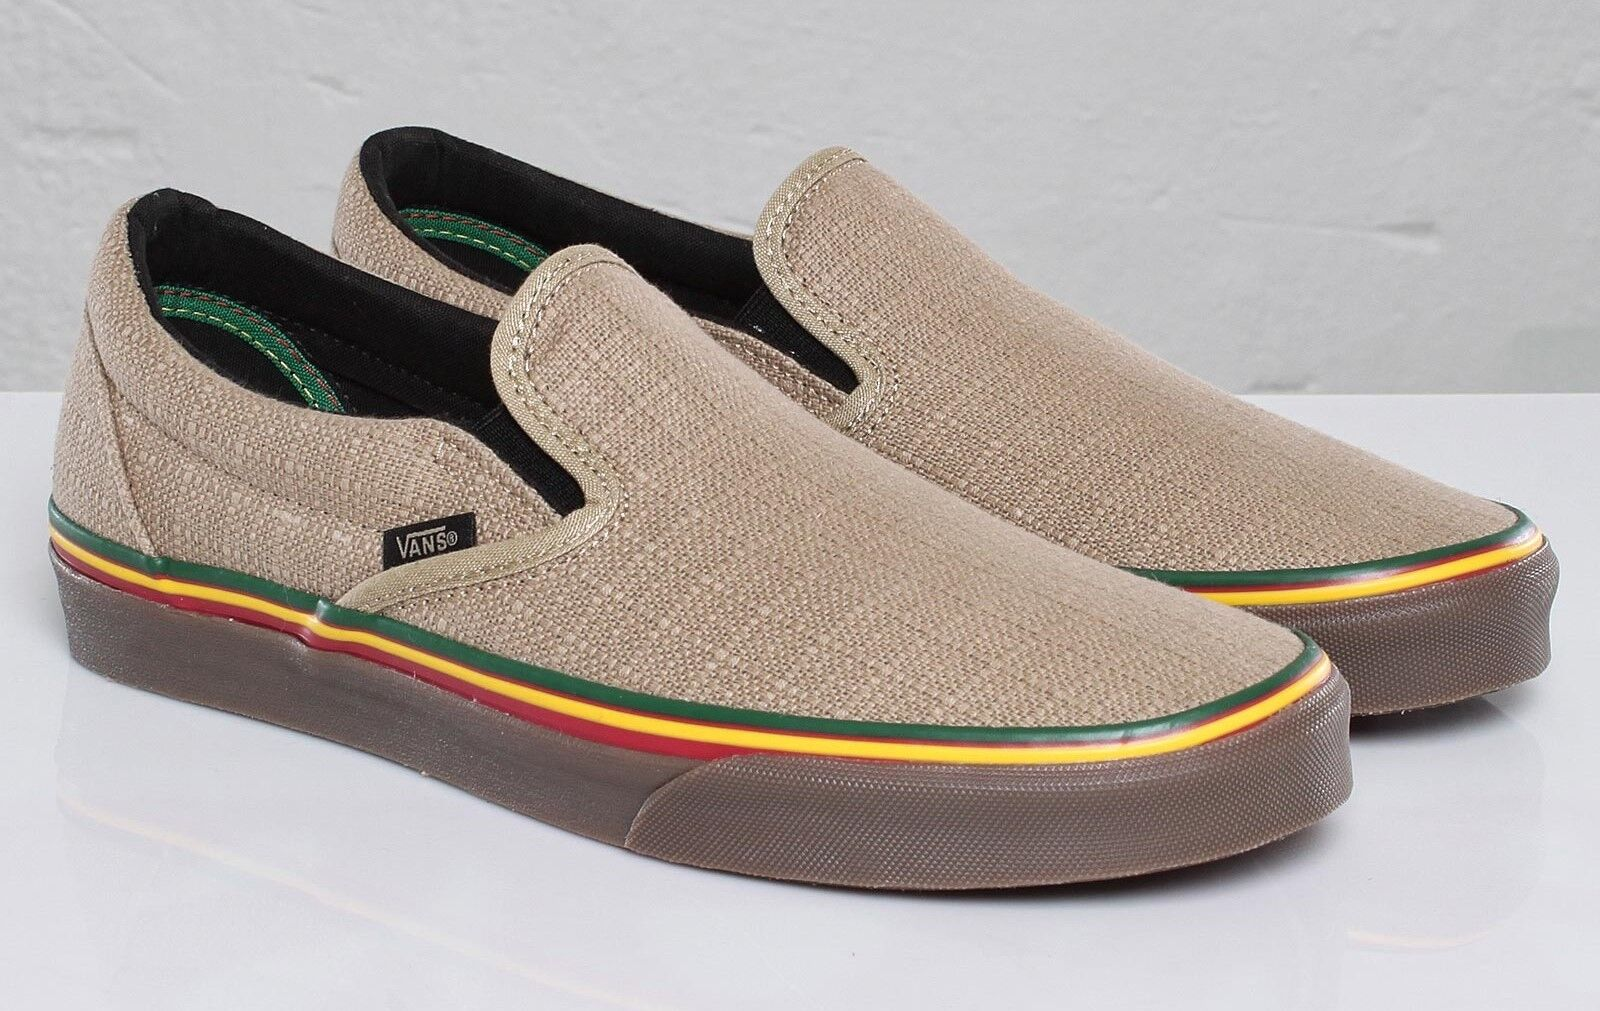 Vans Classic Slip-On (HEMP) Irie Incense  VN-0LYF1ZG  rare vegan RASTA   10.5 US